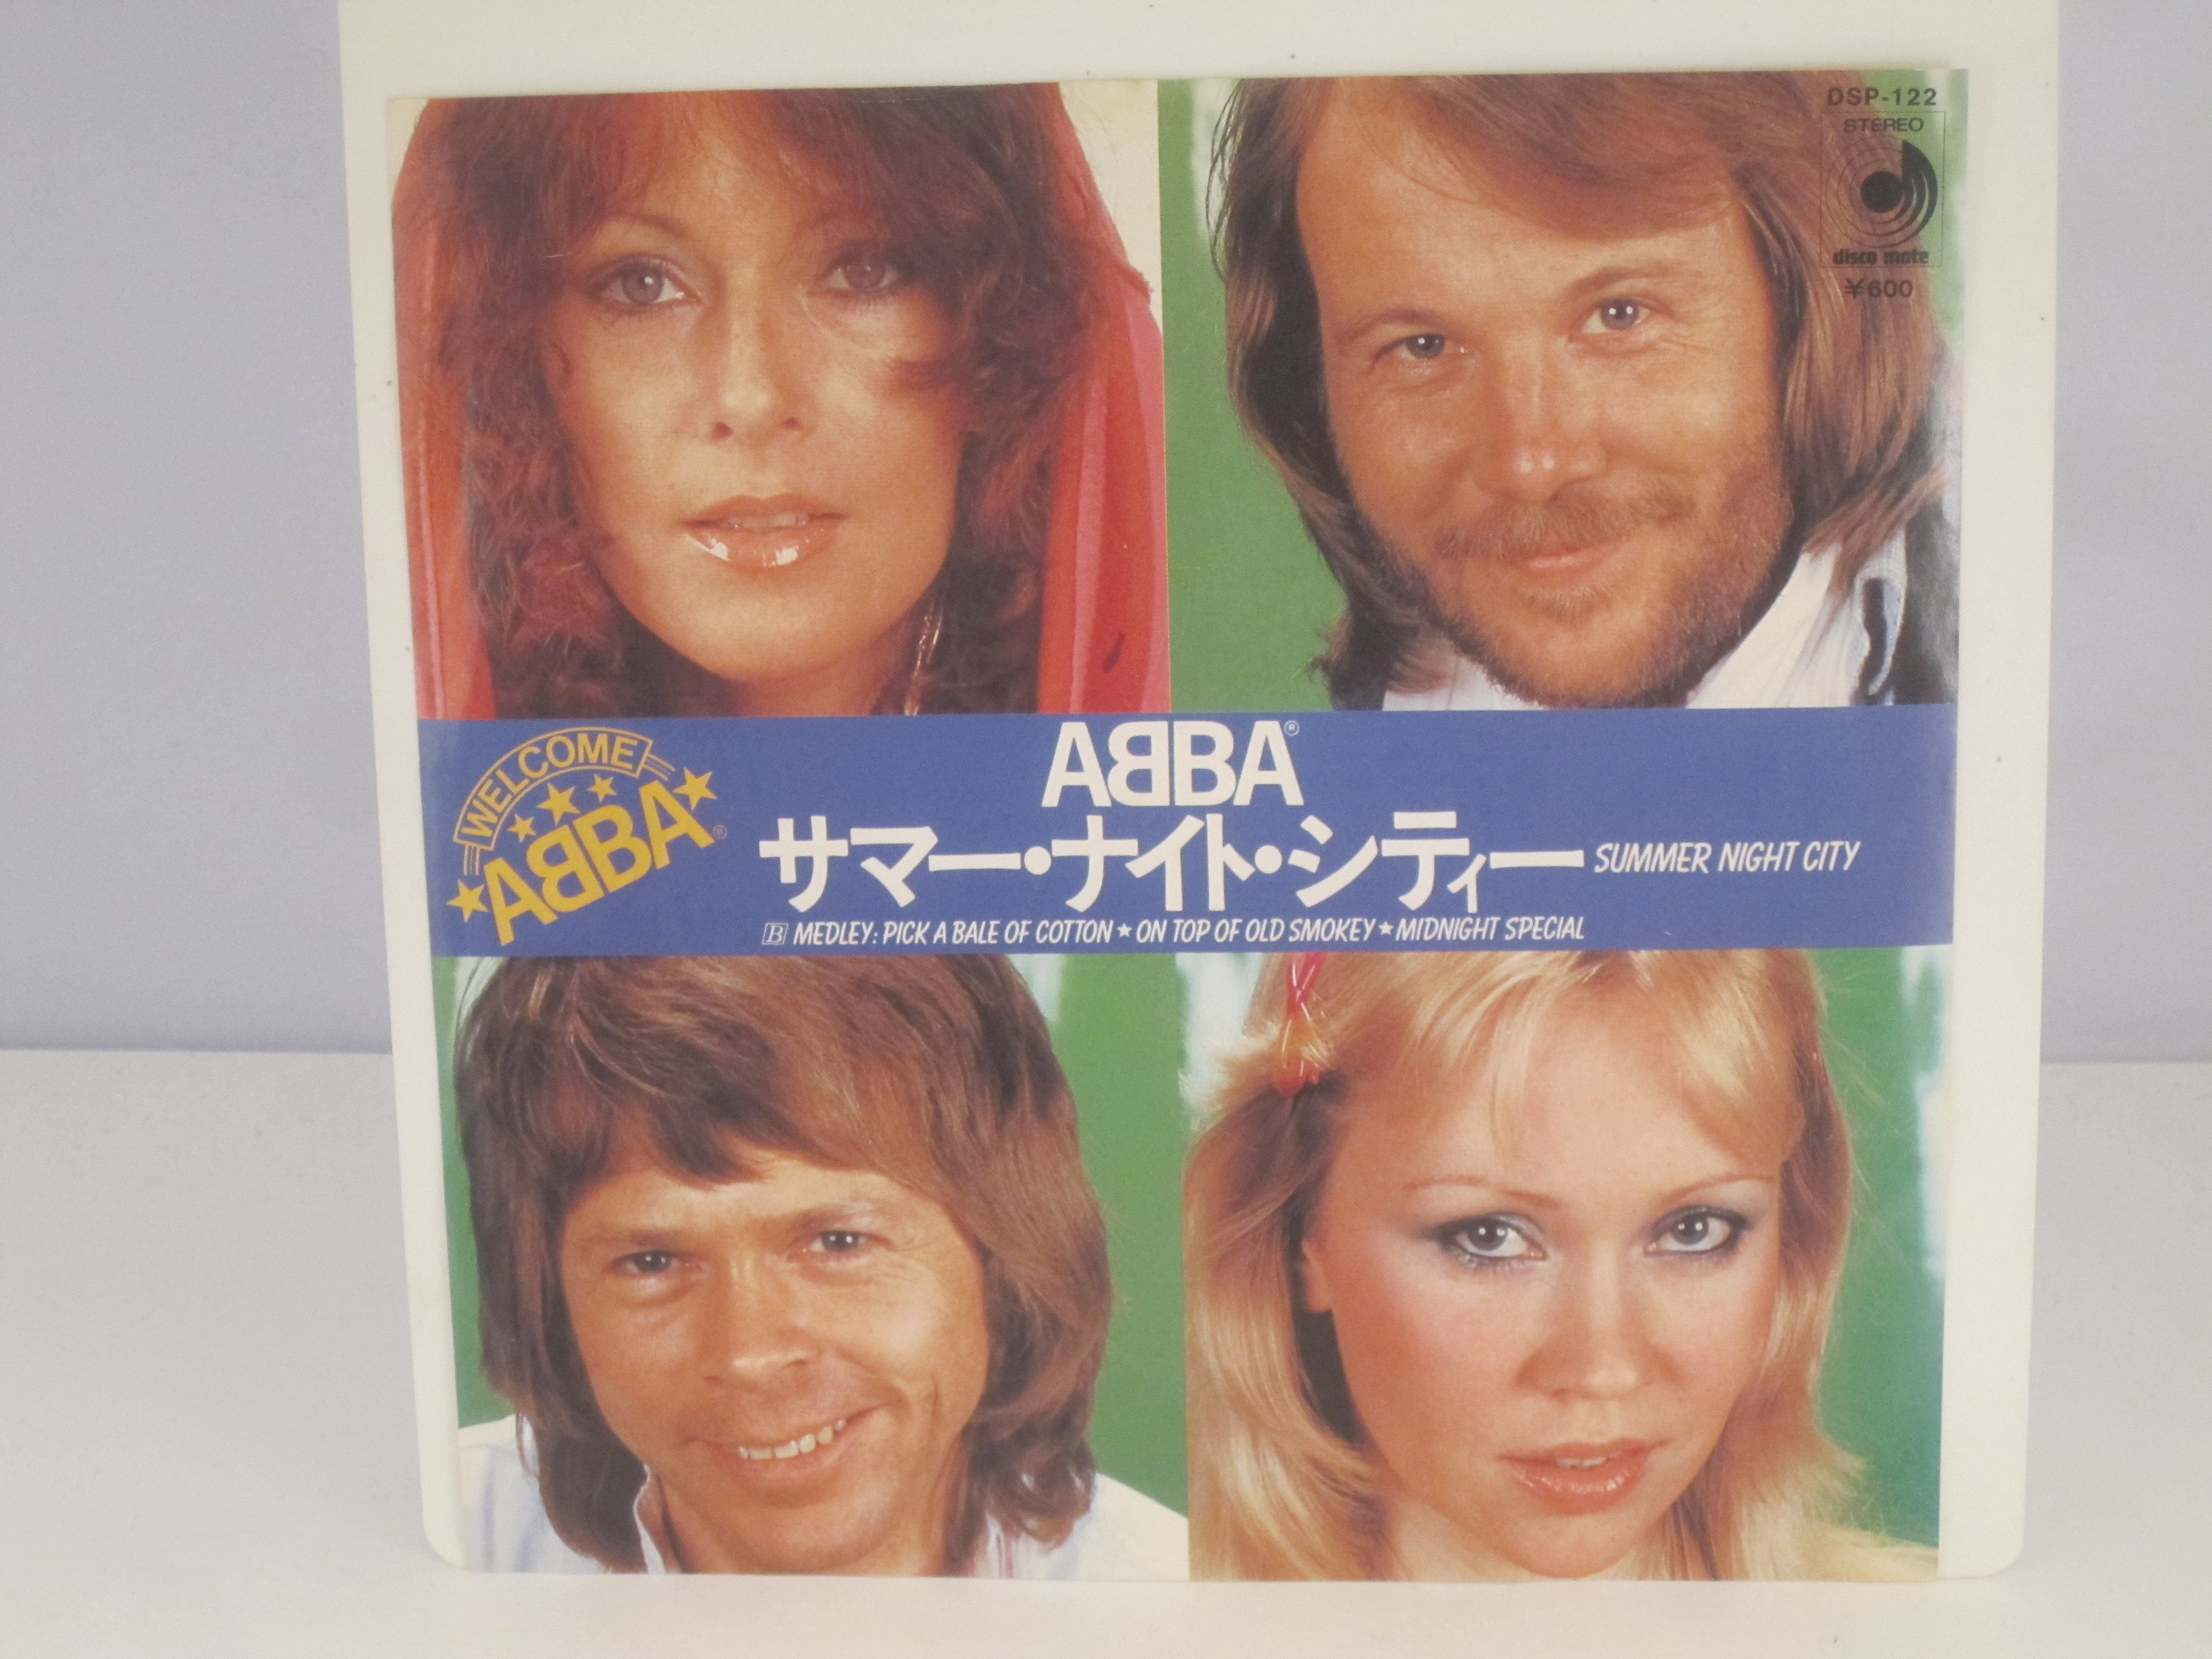 ABBA : Summer night city / Medley...........